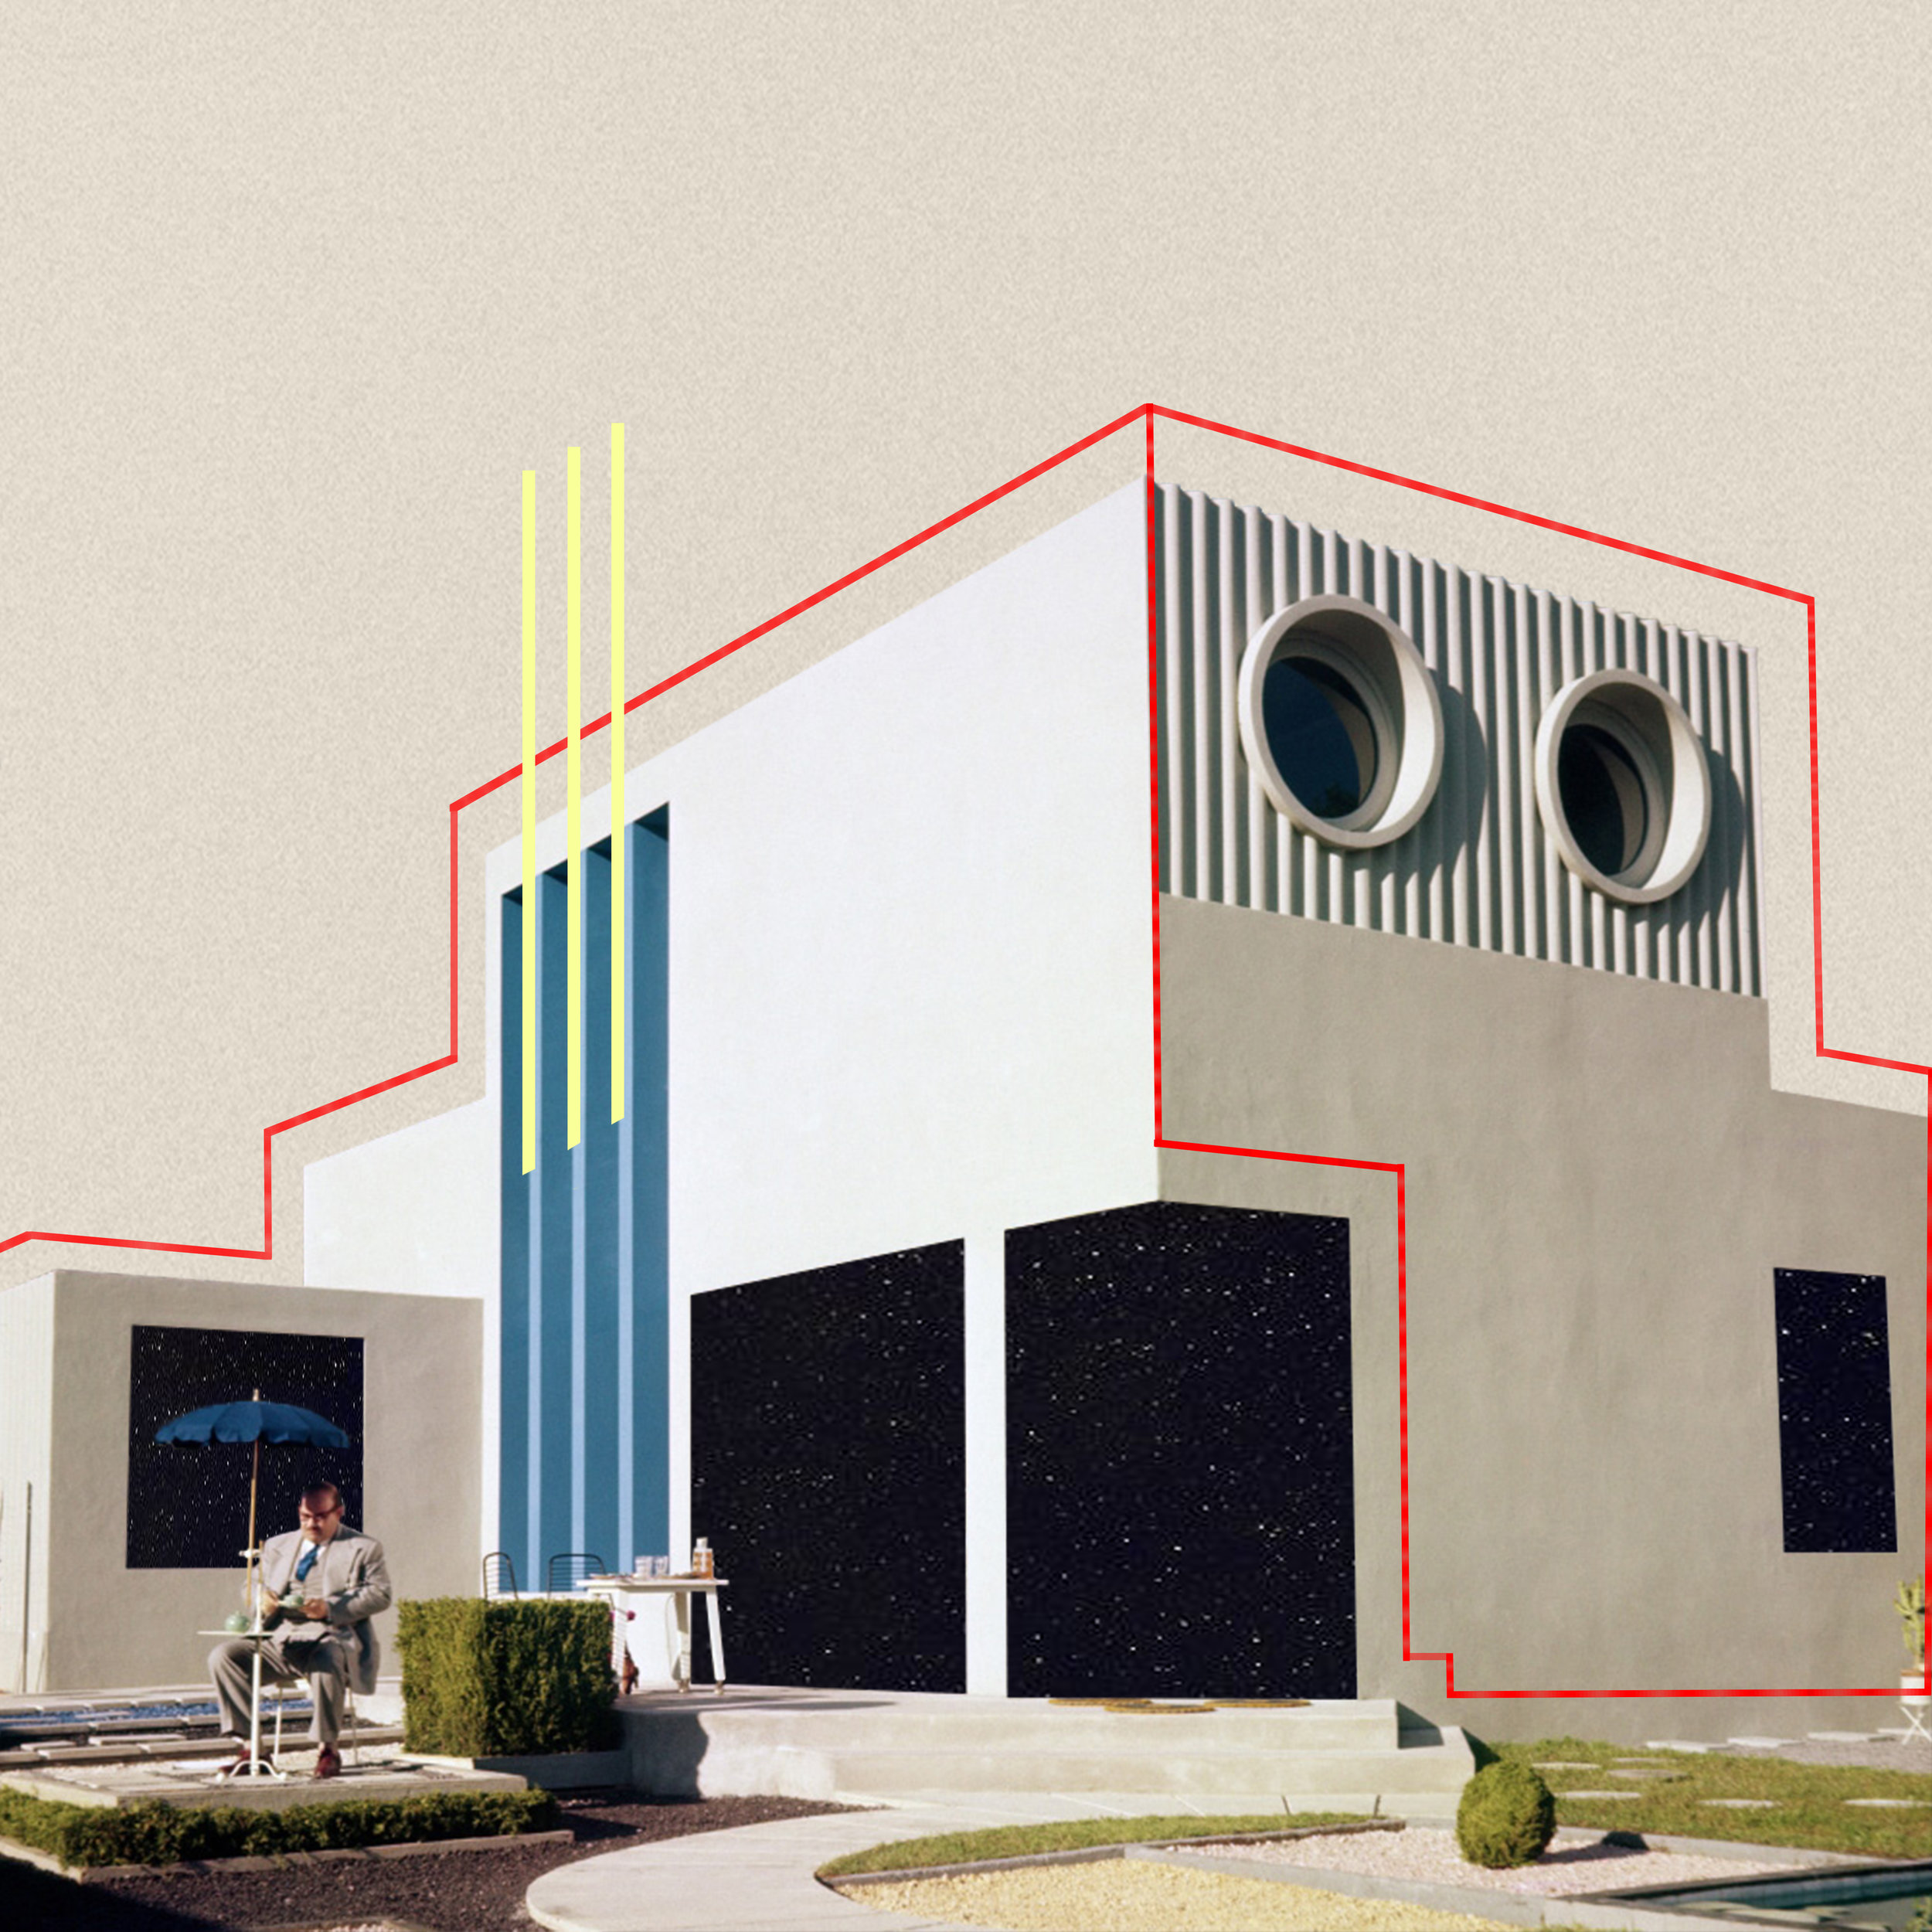 hauselav - house from «Mon Oncle» which I first saw at Home Futures exhibition at Design Museum month ago, inspiration drawn from Alexey Bogolepov's work of reflection of Soviet Era buildings